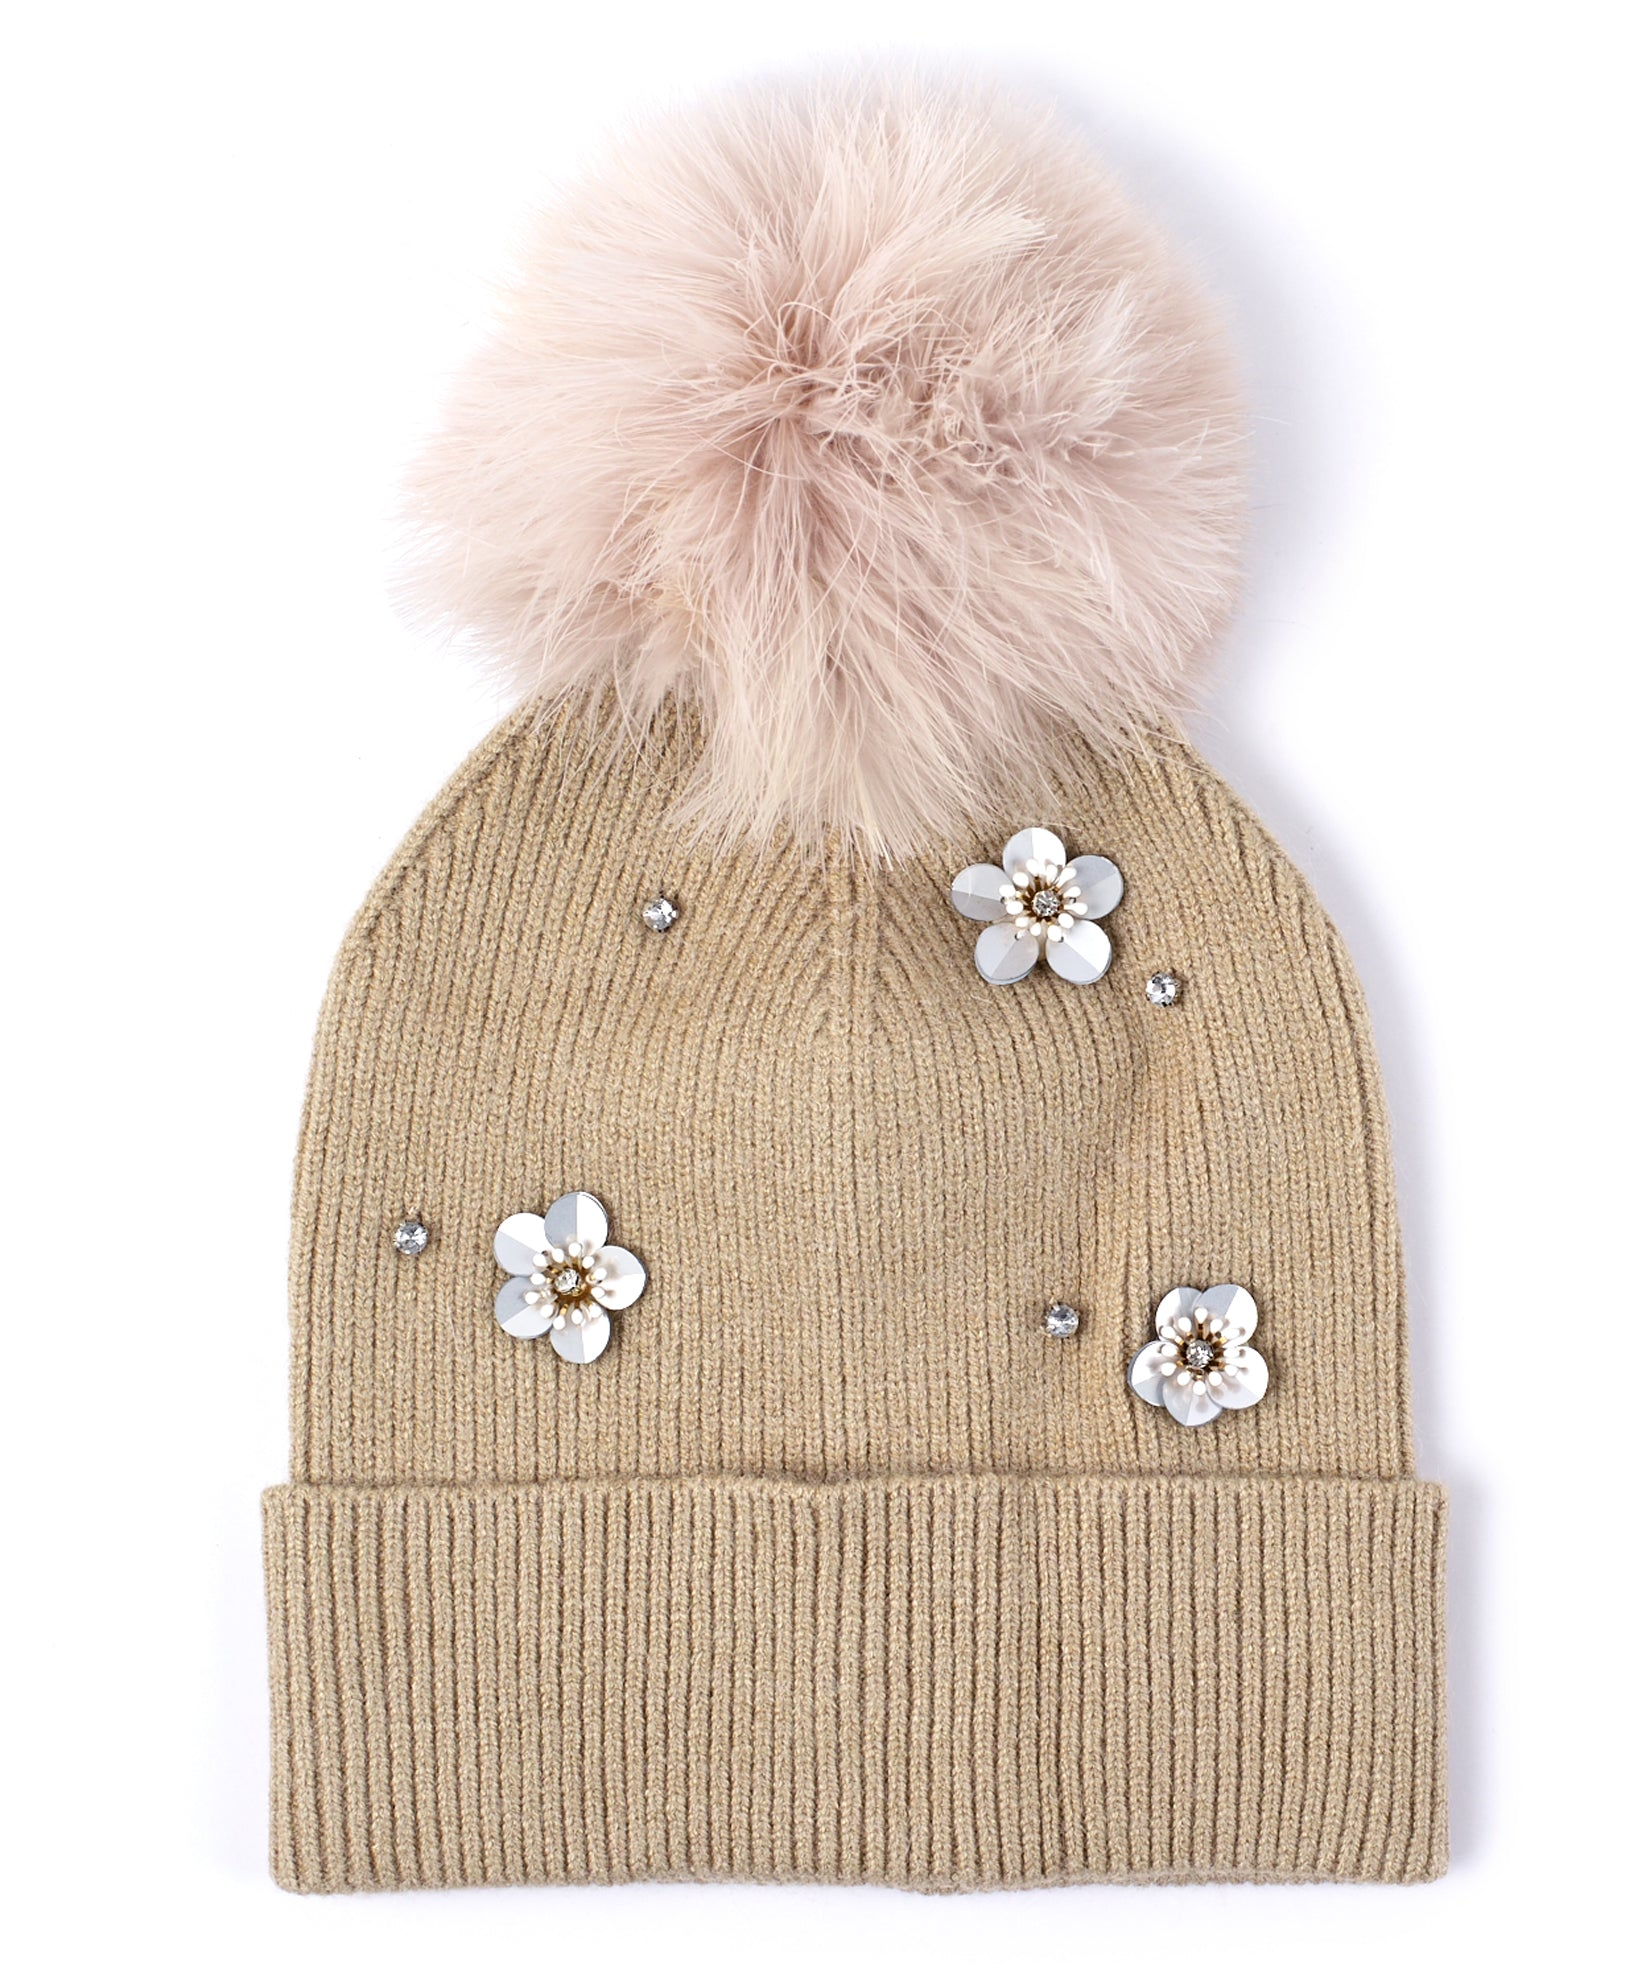 Echo Oatmeal - Embellished Flower Hat With Feather Pom